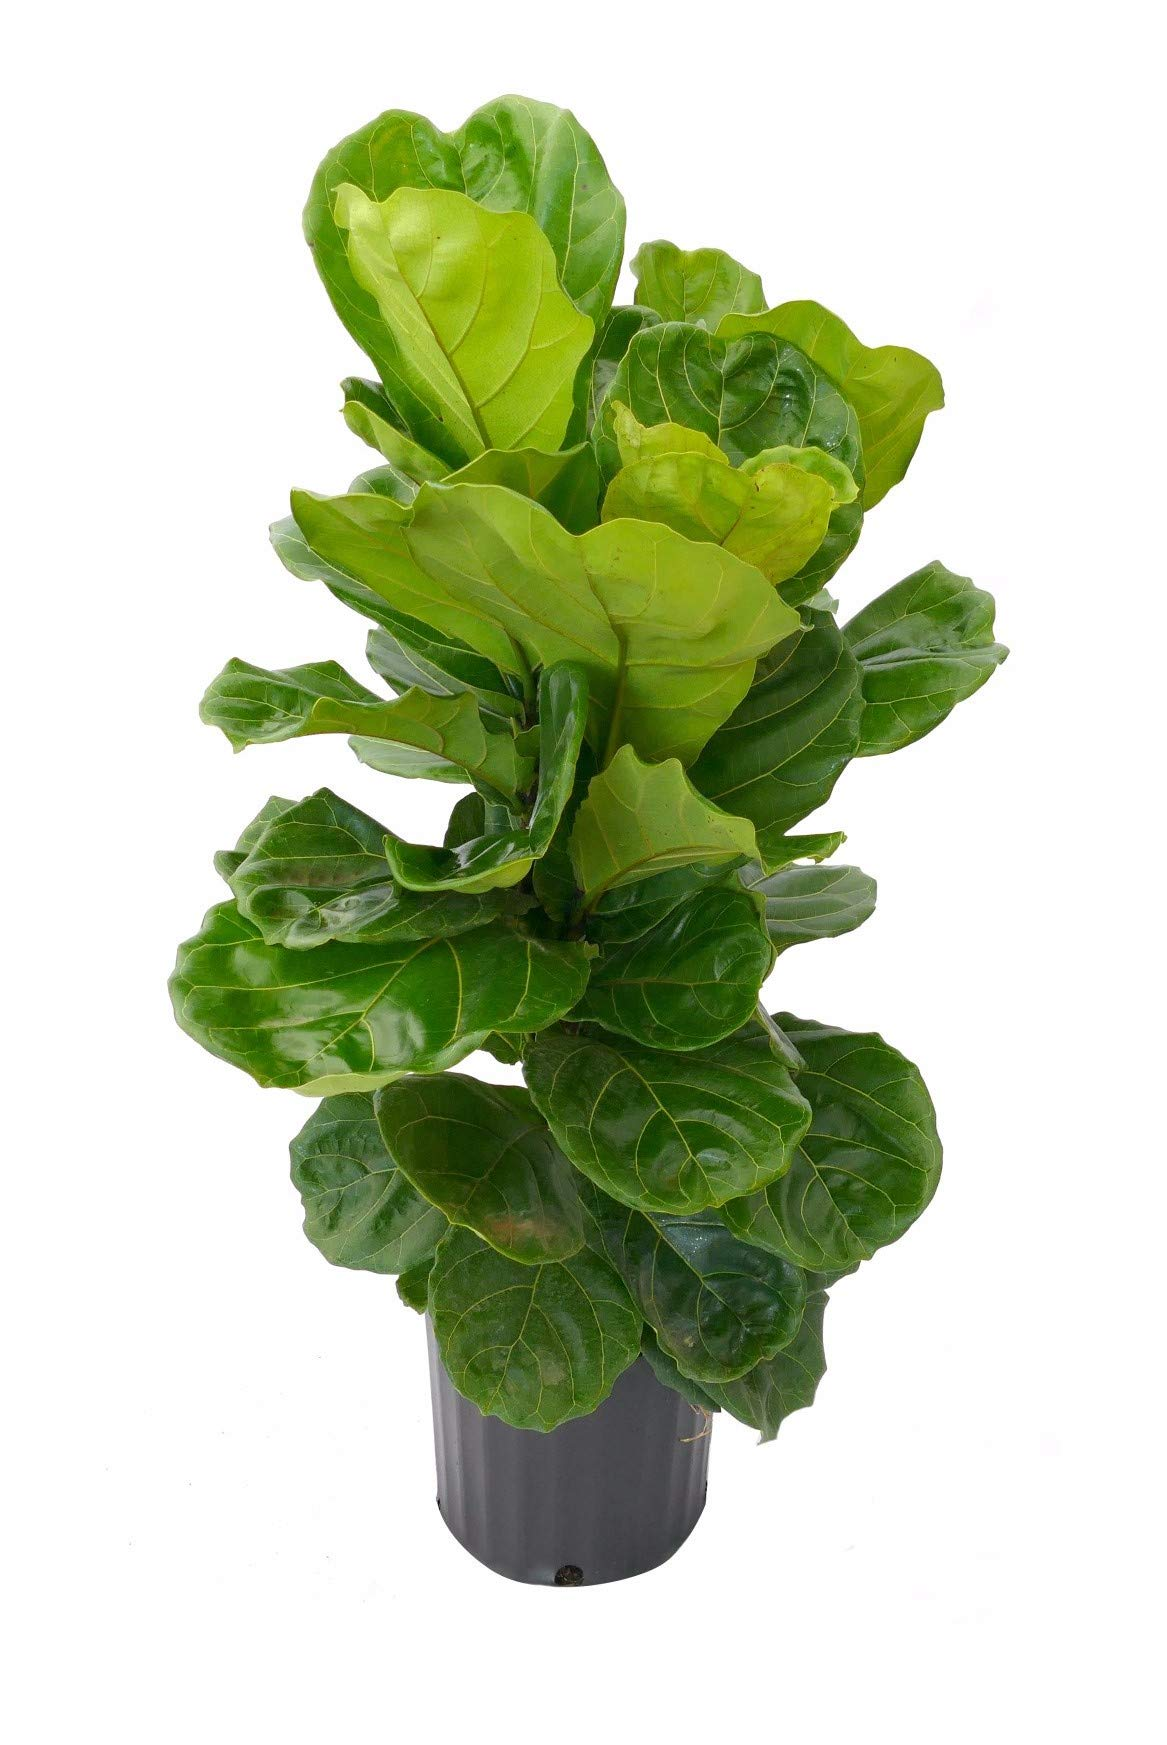 Acosta Farms - Fiddle Leaf Fig (Ficus Lyrata) - Live Indoor and Outdoor House Plant - 24''-36'' Tall in 9.25'' Pot - Planted and Grown by us, Handled with Extreme Care